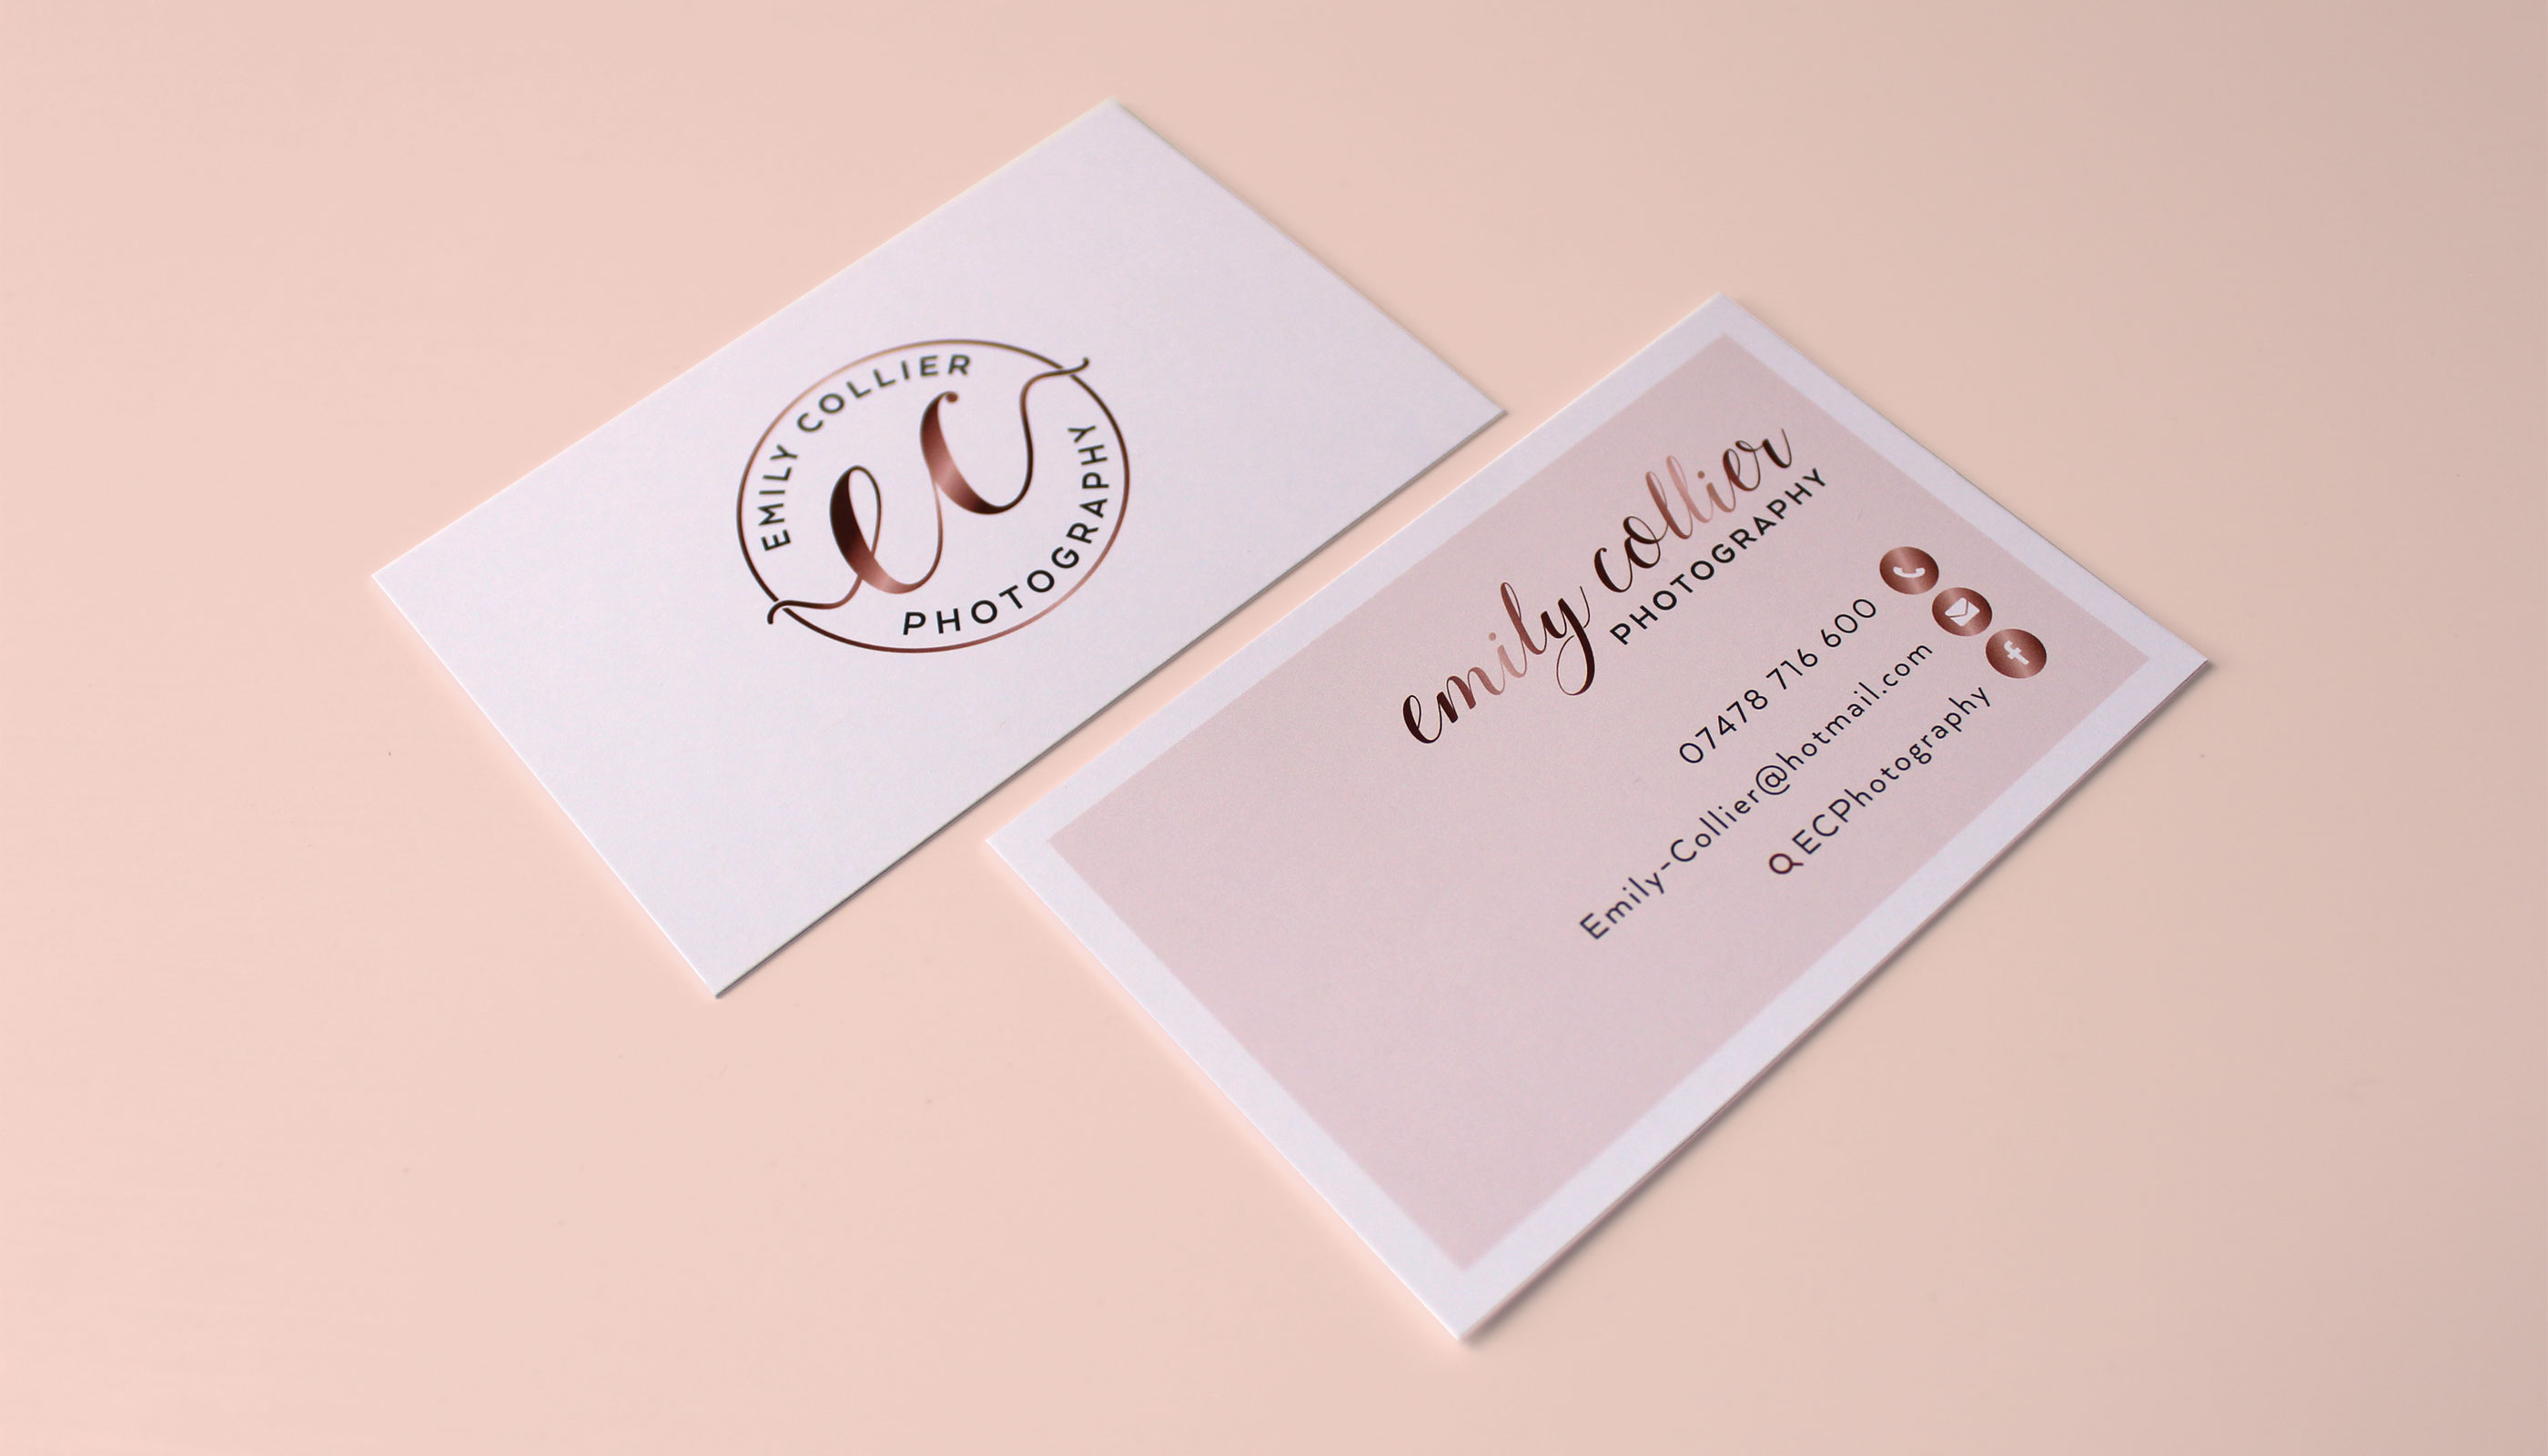 Business cards design and print for EC Photography in Harwich, Essex.